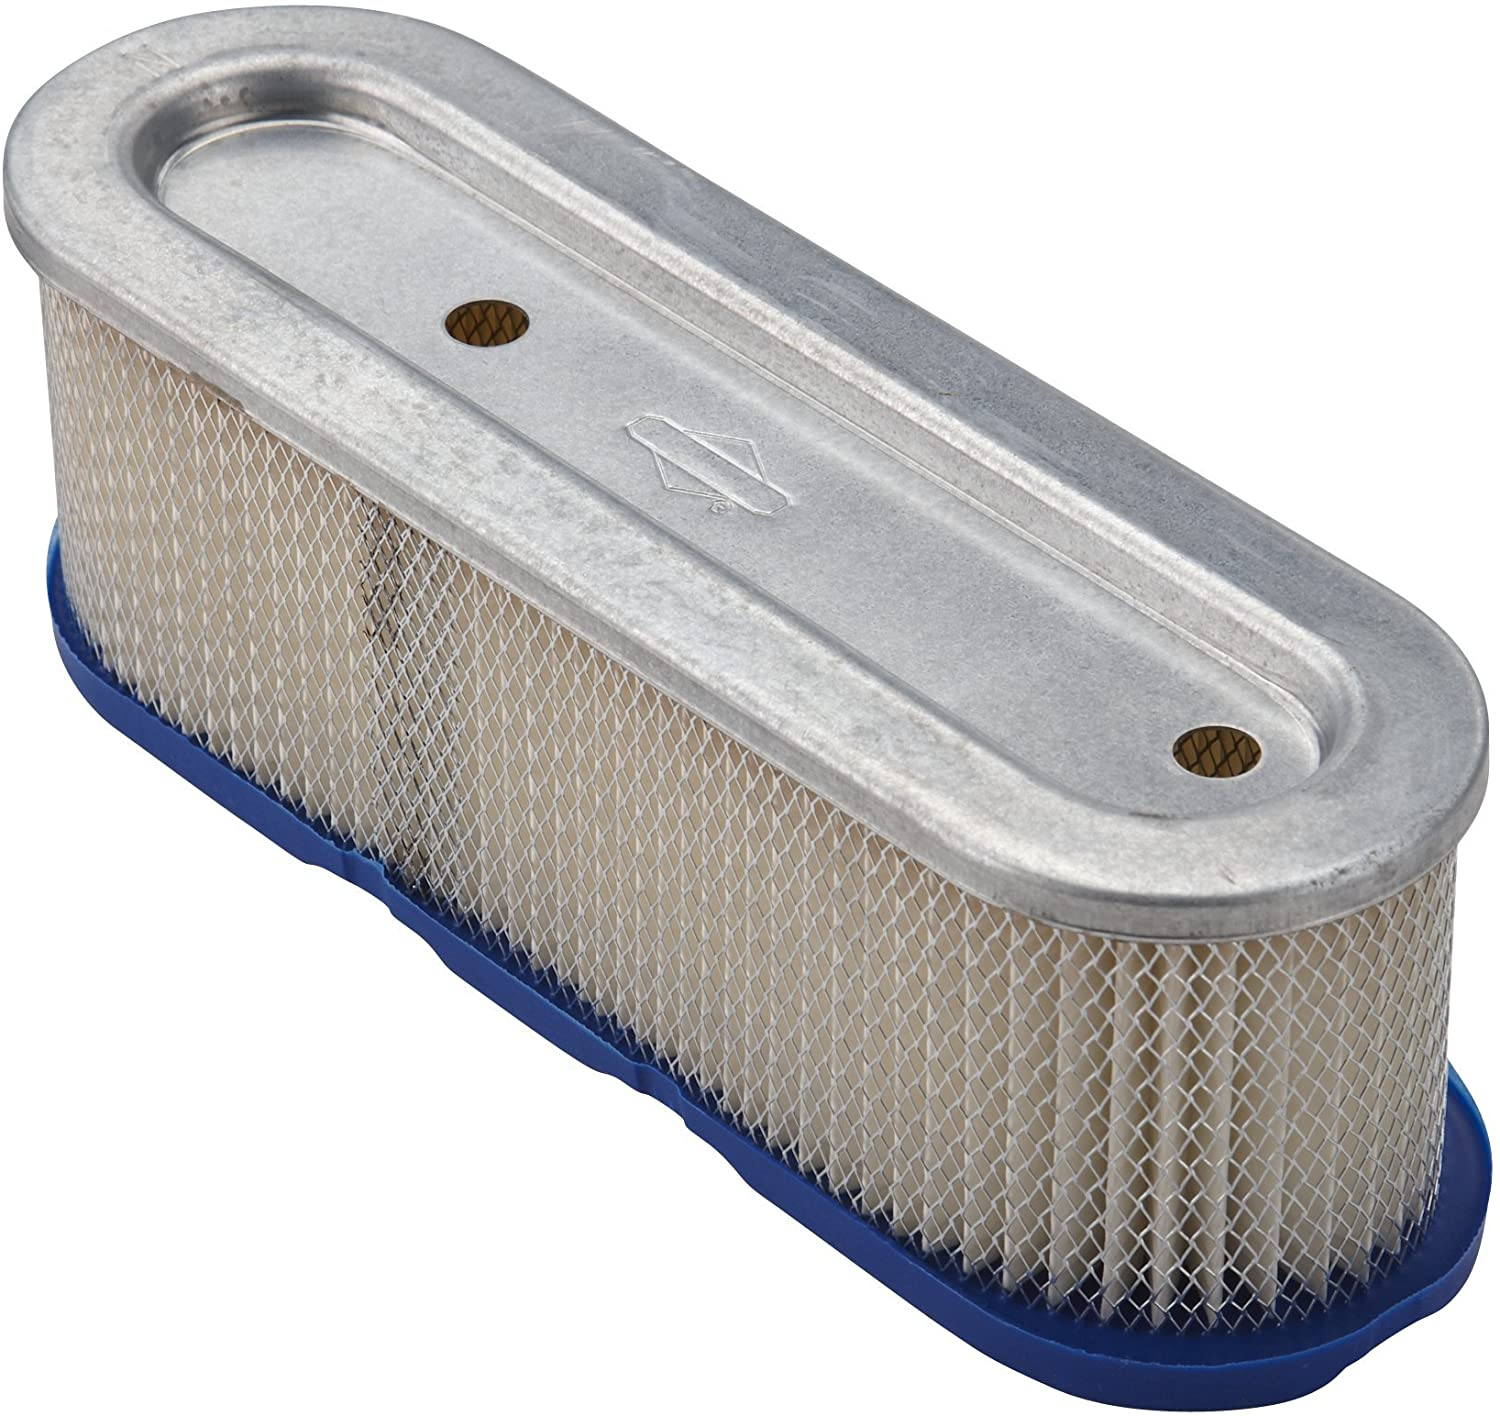 Briggs & Stratton 399806S Oval Air Filter Cartridge